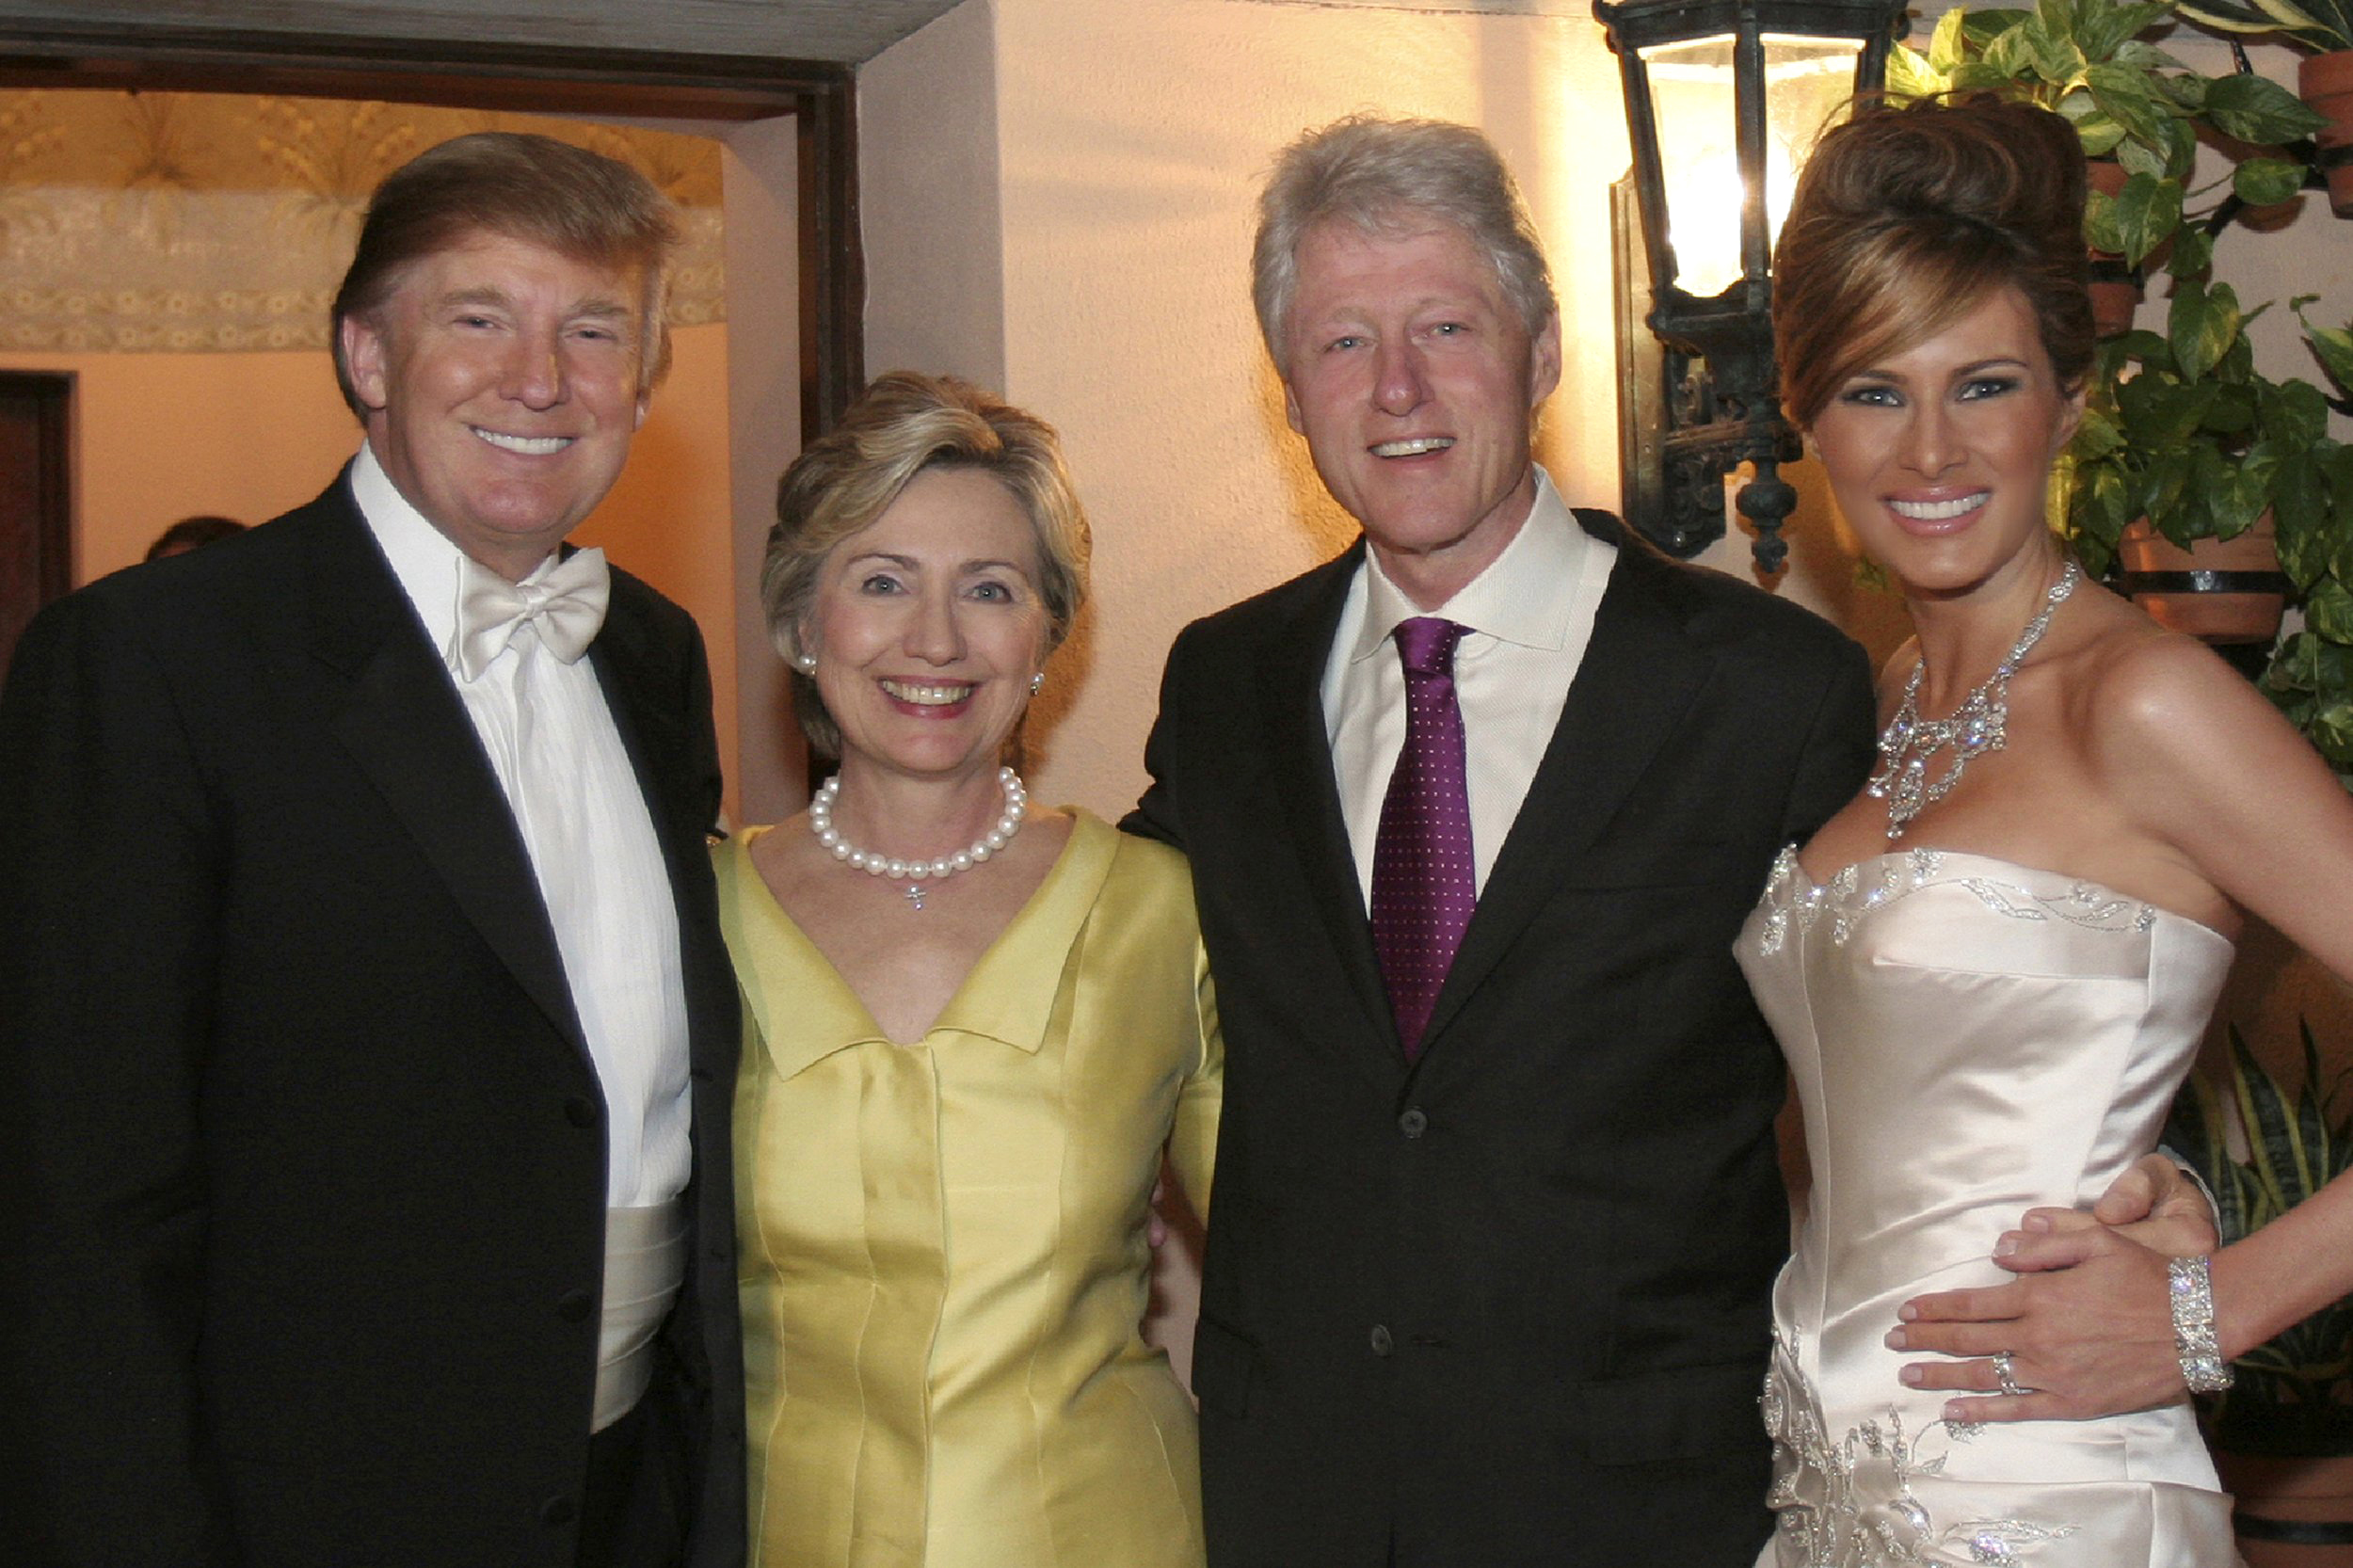 Trump S Wedding To Melania Was 15 Years Ago It Explains So Much About Our Cultural Moment